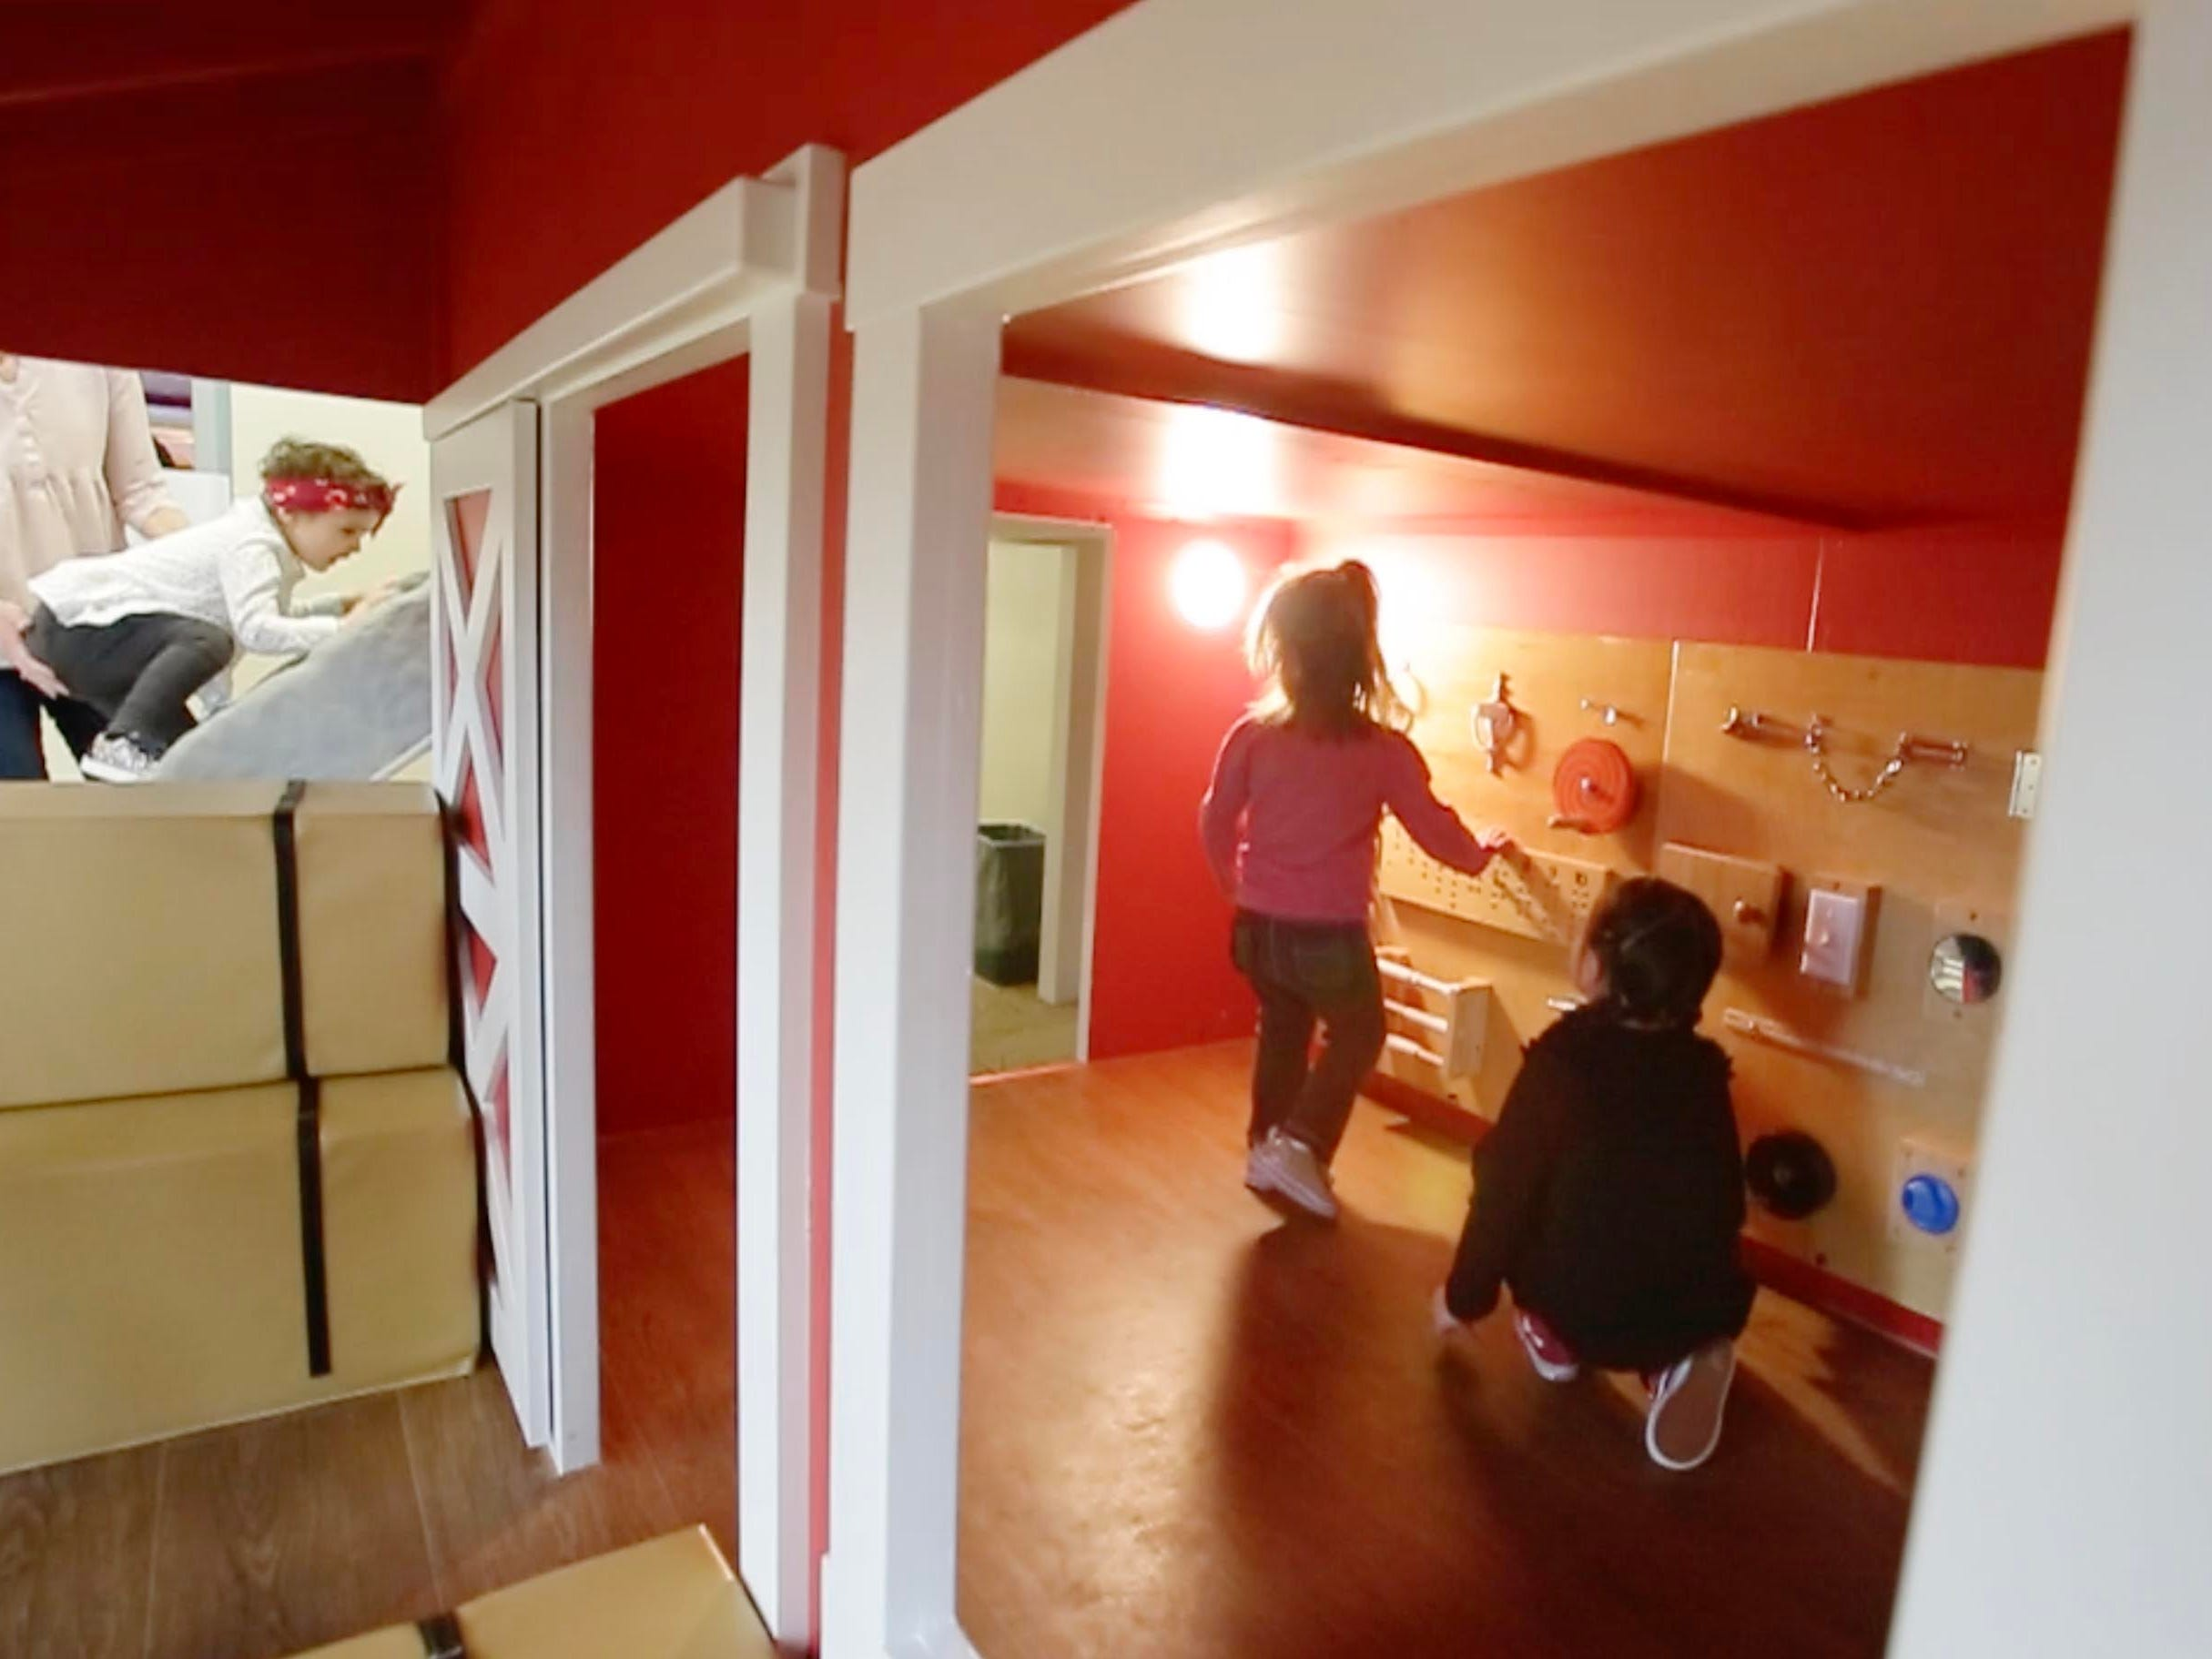 There are things for youngsters to do inside the Toddler Barnyard at the Above and Beyond Children's Museum, Saturday, February 23, 2019, in Sheboygan, Wis. The new exhibit opened Saturday.